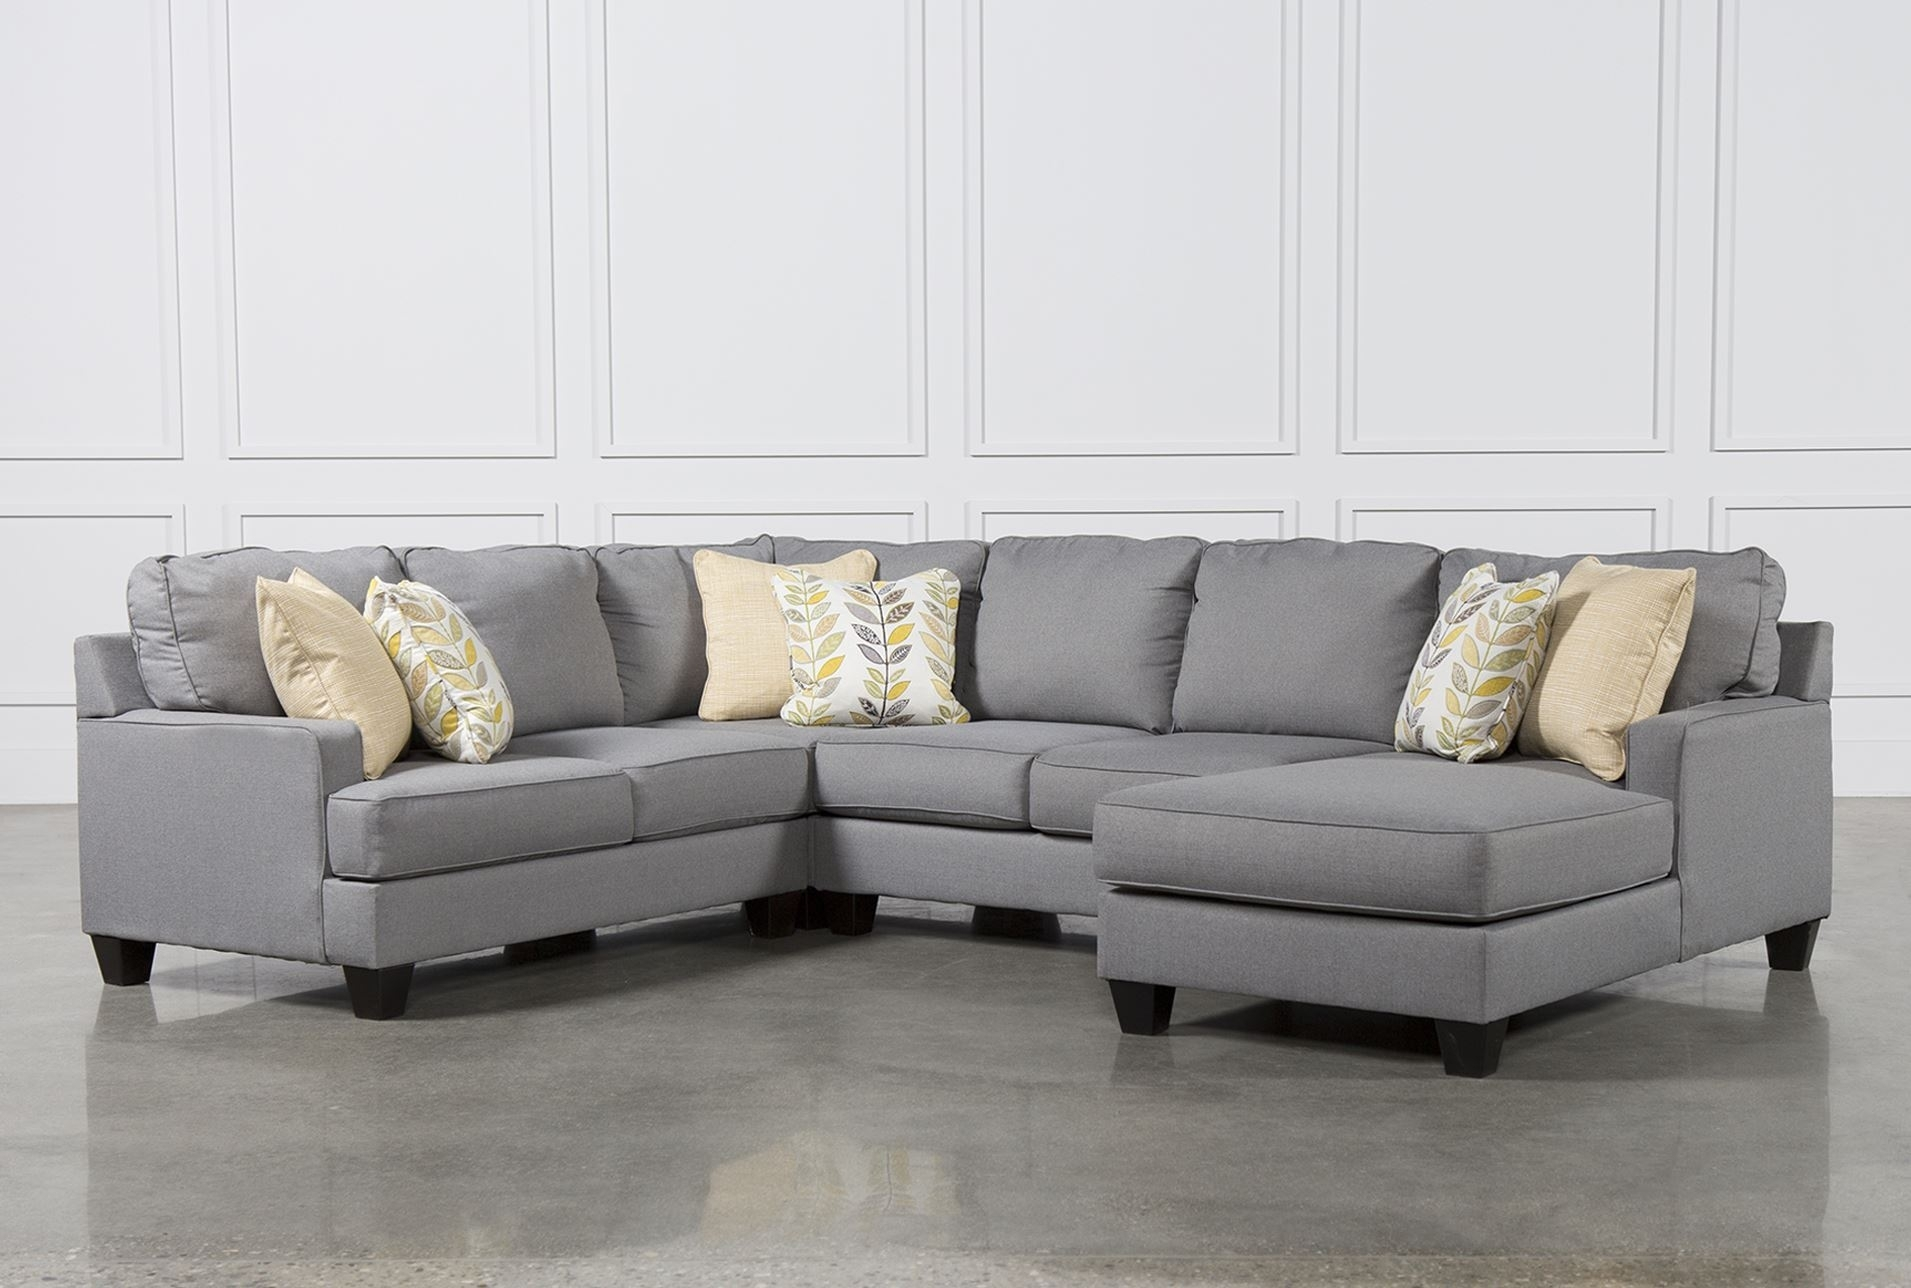 Sofa: Comfort And Stylish Patola Park Sectional — Laetapaparaguay In Meyer 3 Piece Sectionals With Laf Chaise (Image 23 of 25)